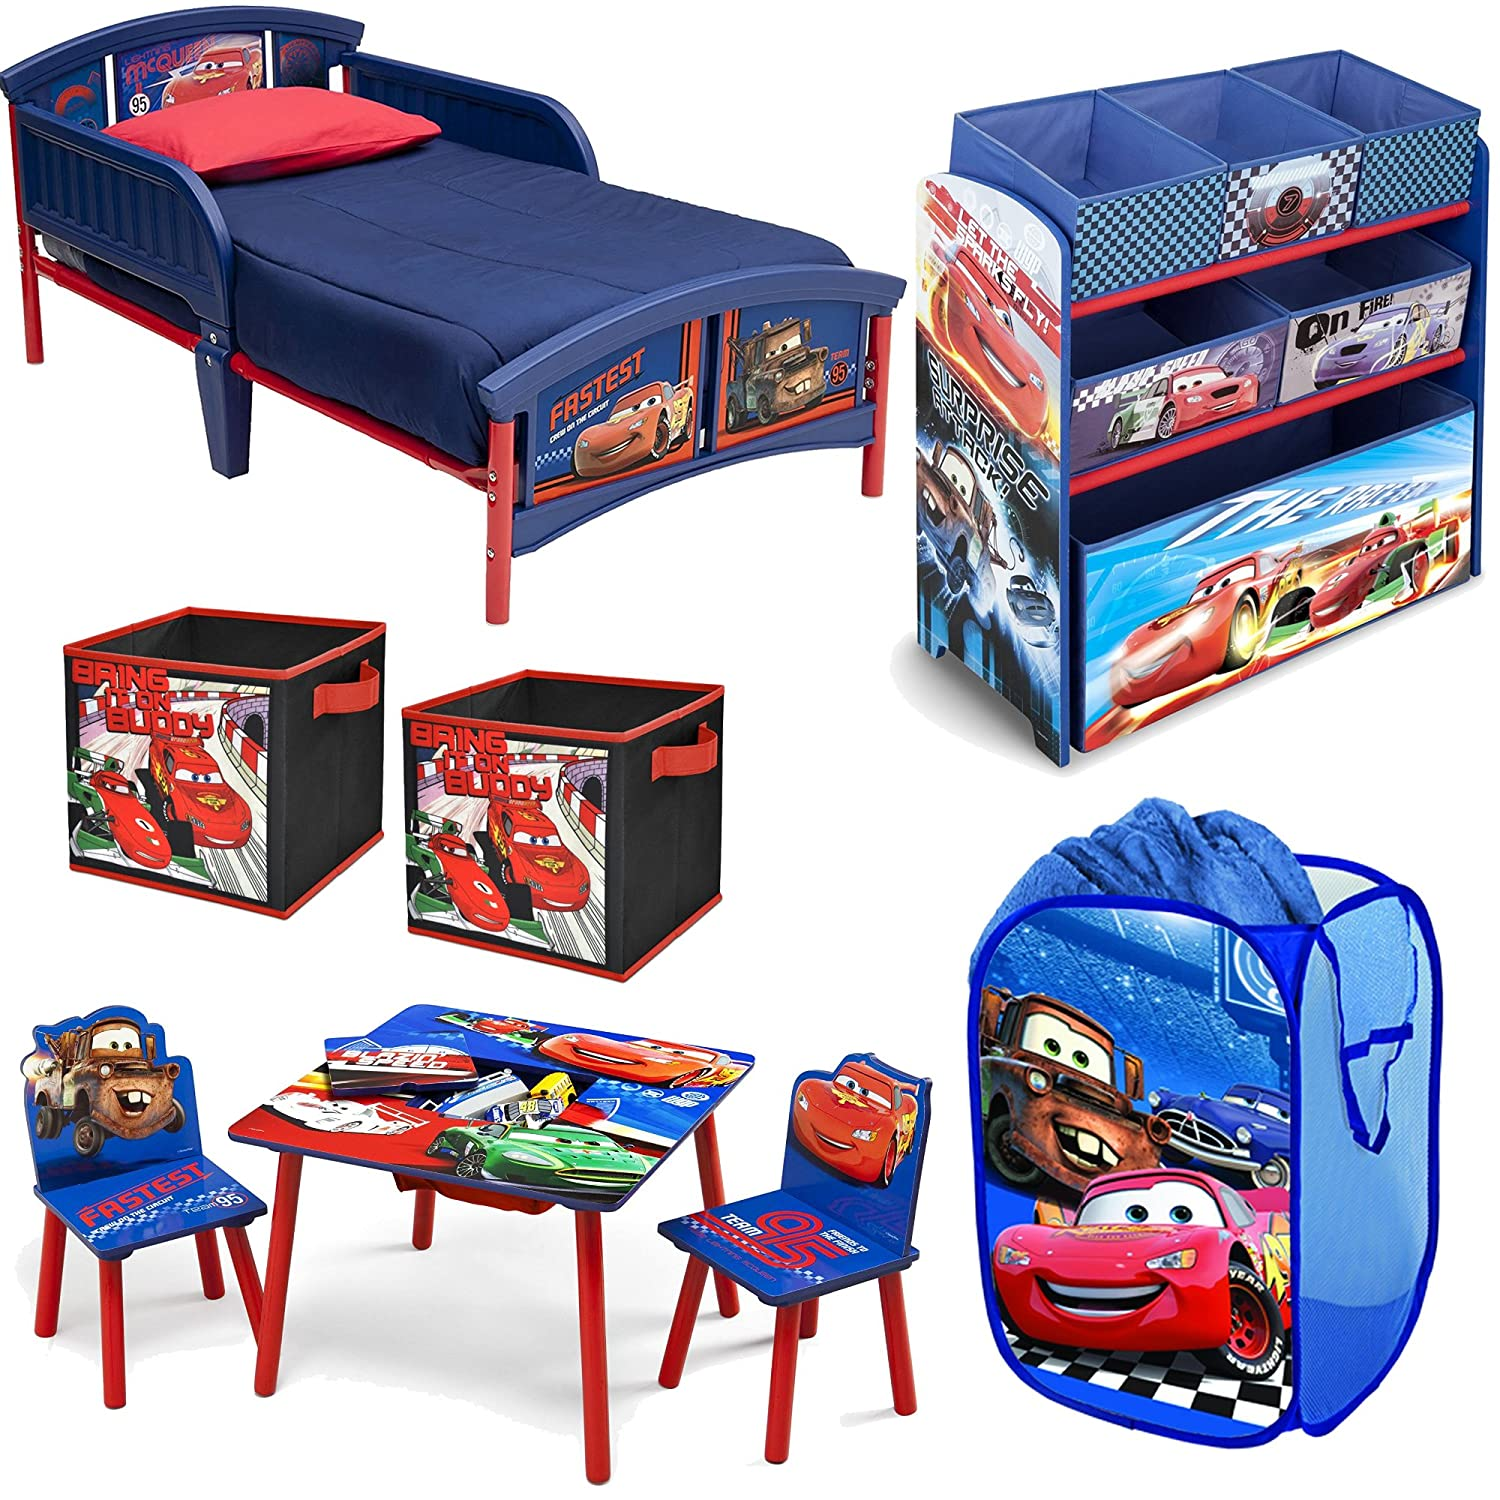 Amazon.com: Disney Delta Children Pixar Cars Lightning McQueen And Mater  8 Piece Furniture Set   Plastic Toddler Bed, Table And Chair Set, Multi Bin  Toy ...